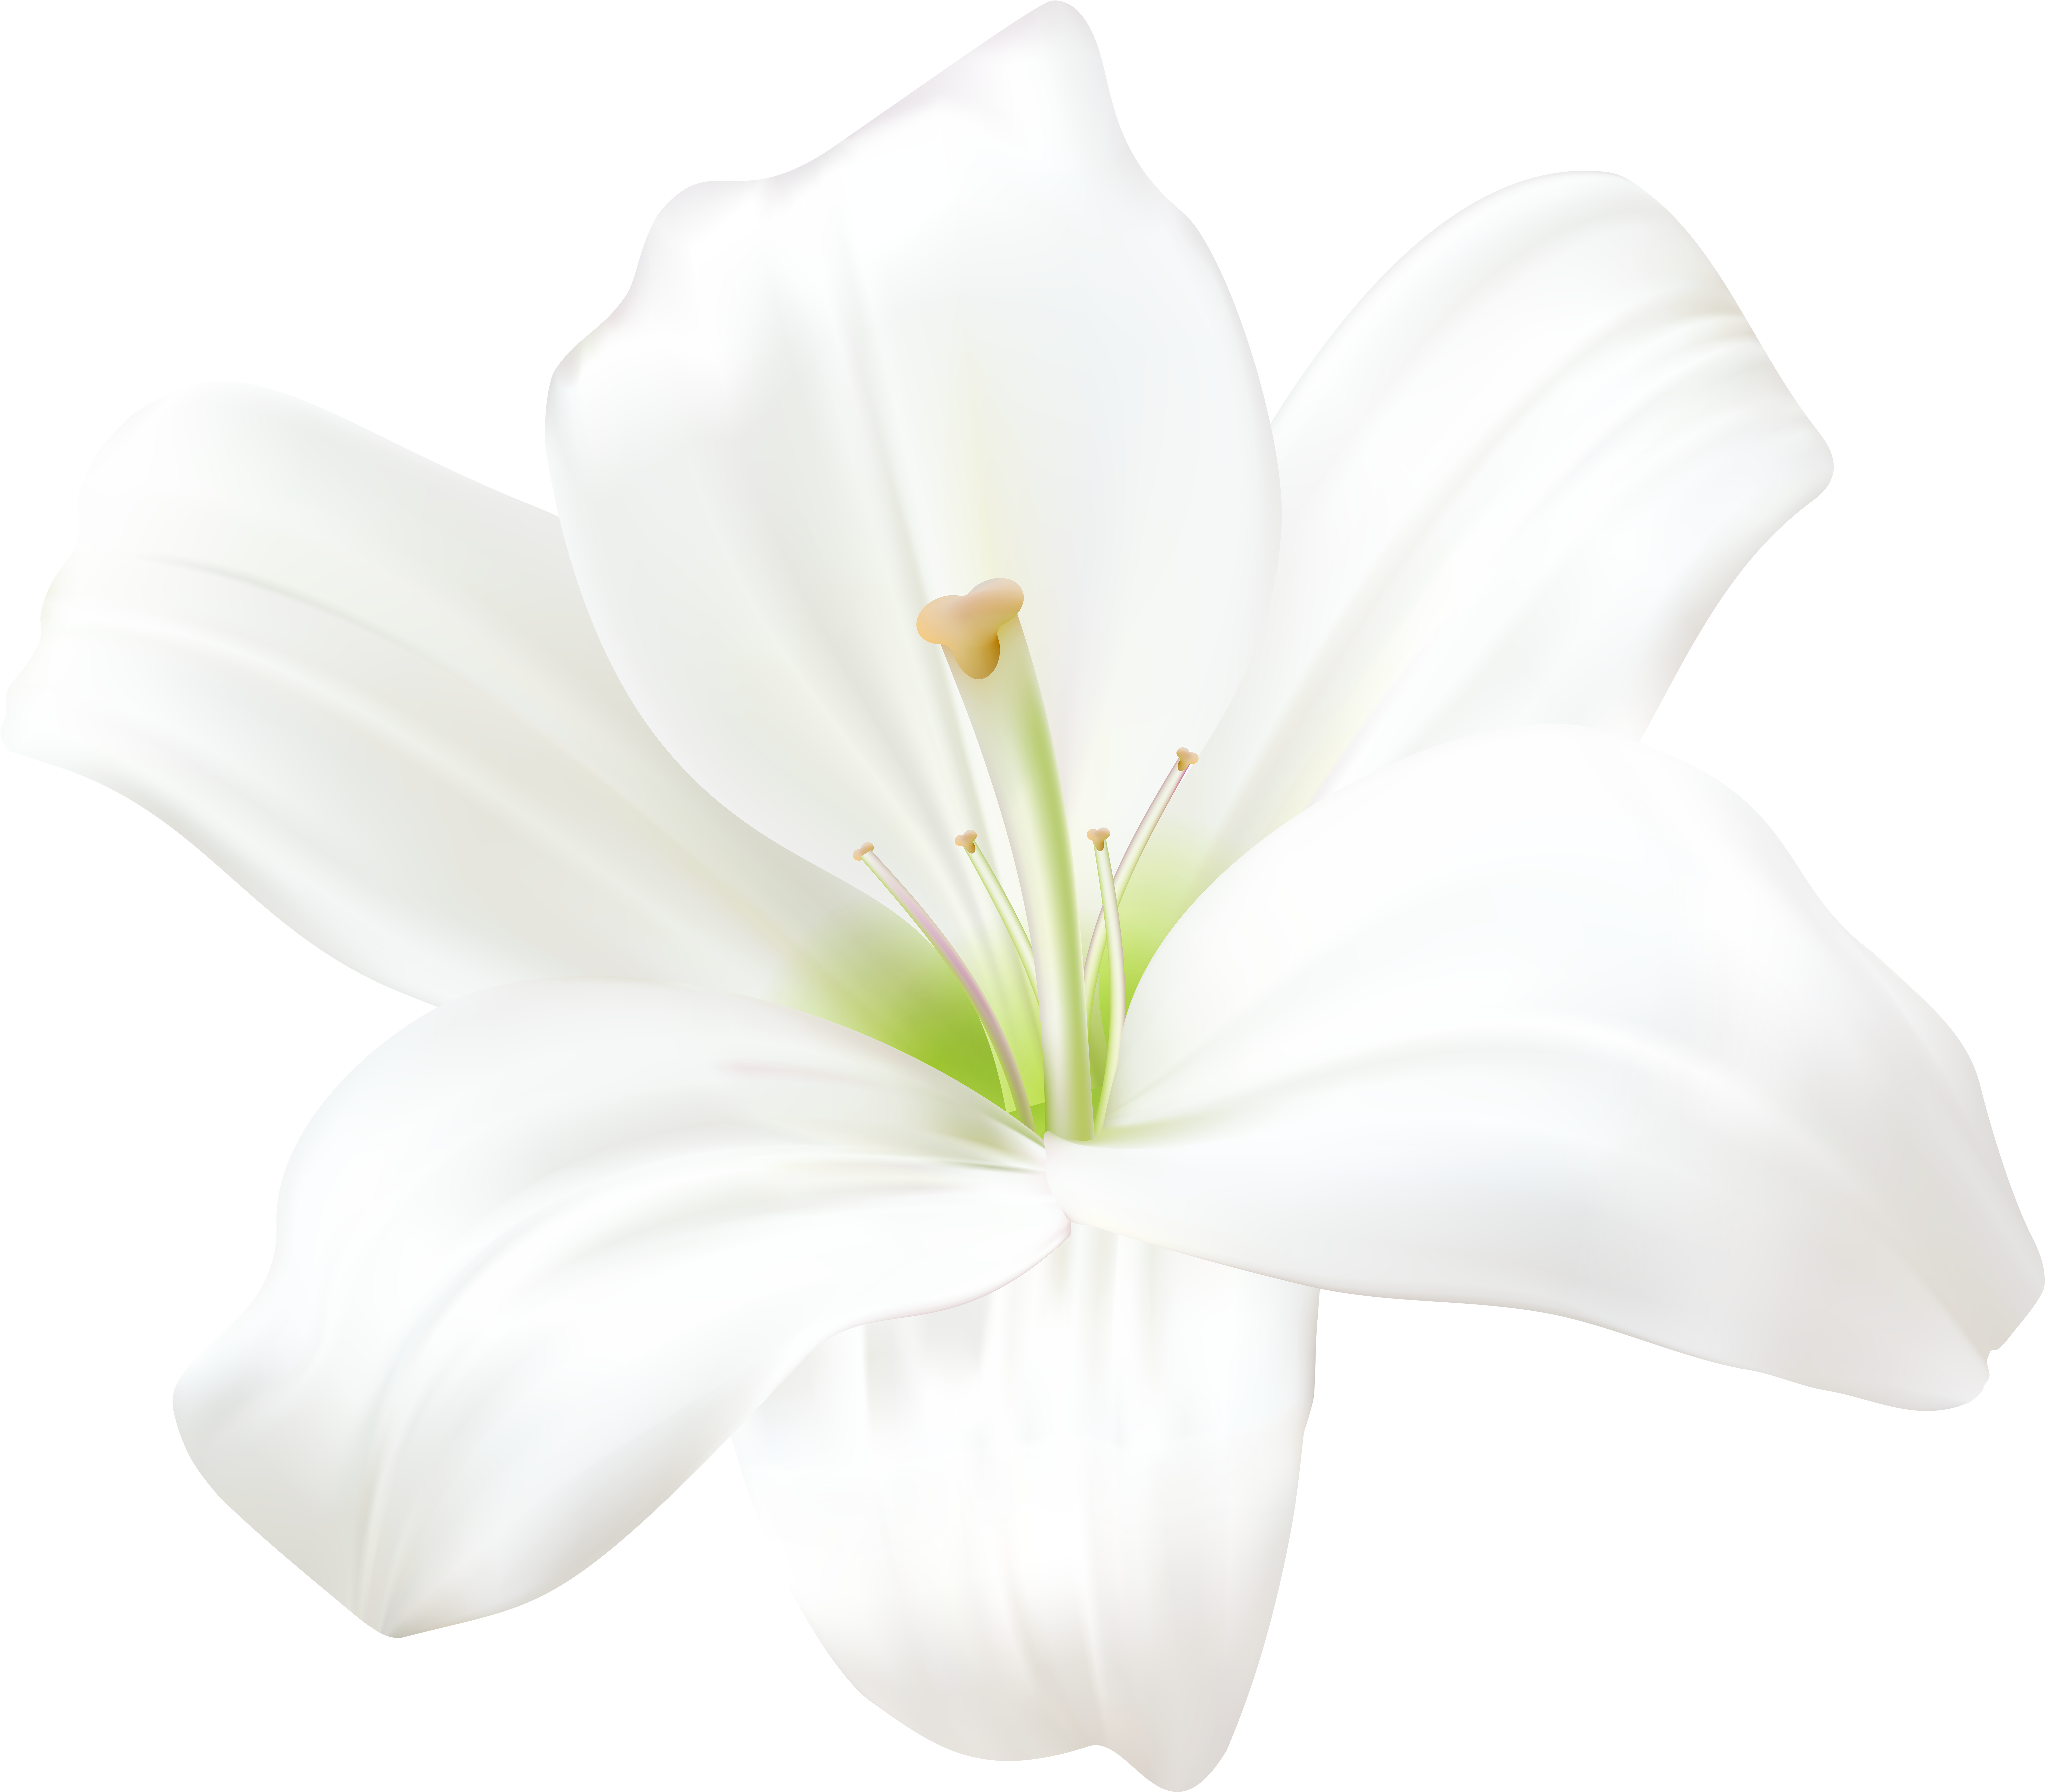 Anime flower png. Download white lilly art